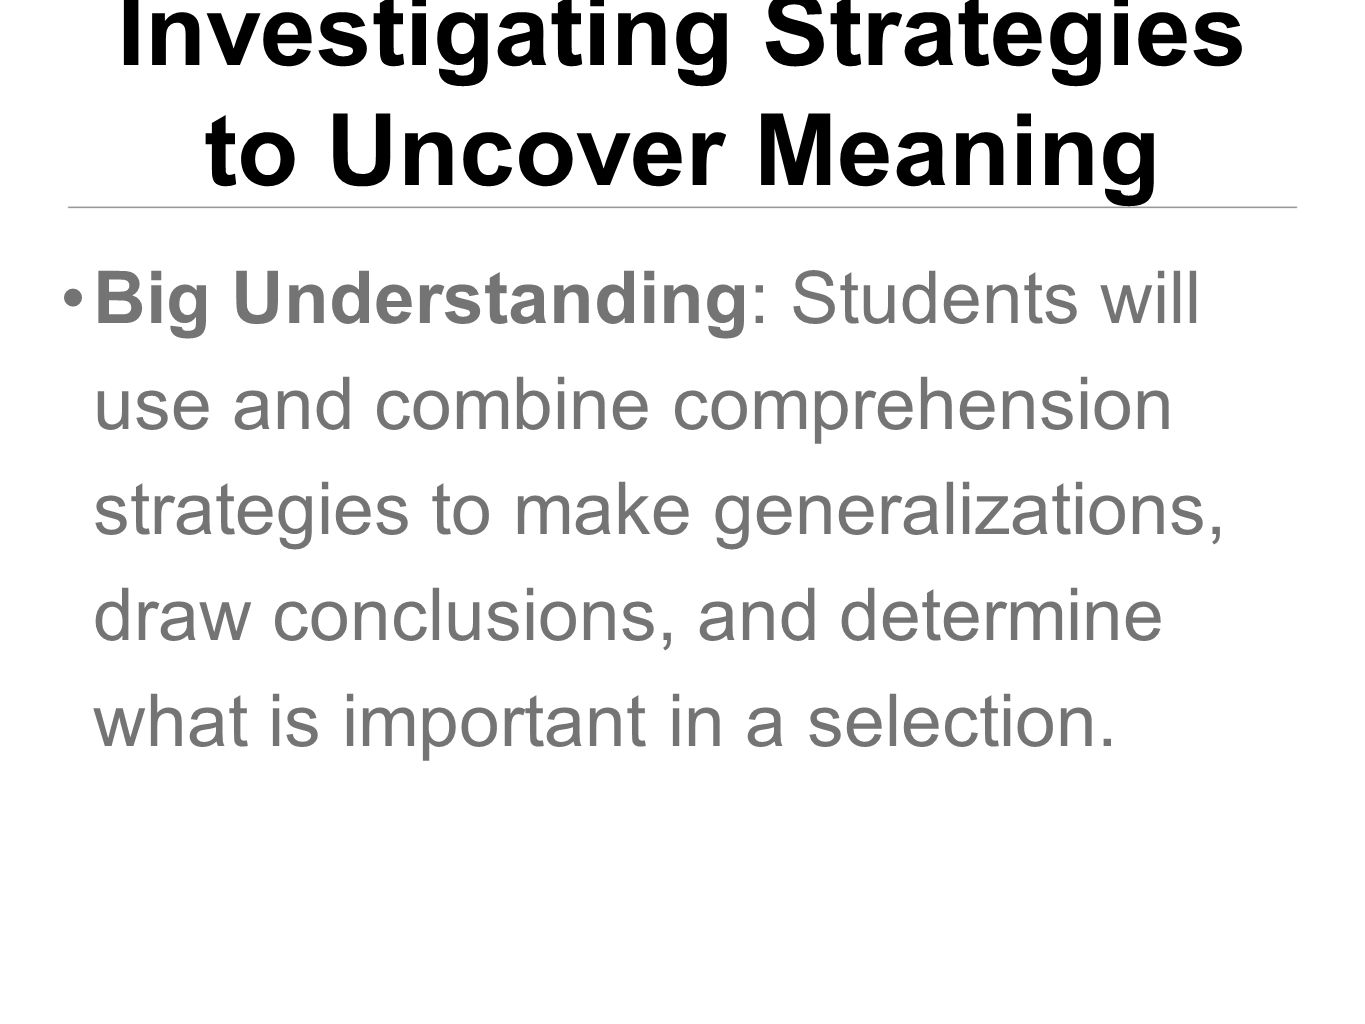 Investigating Strategies to Uncover Meaning